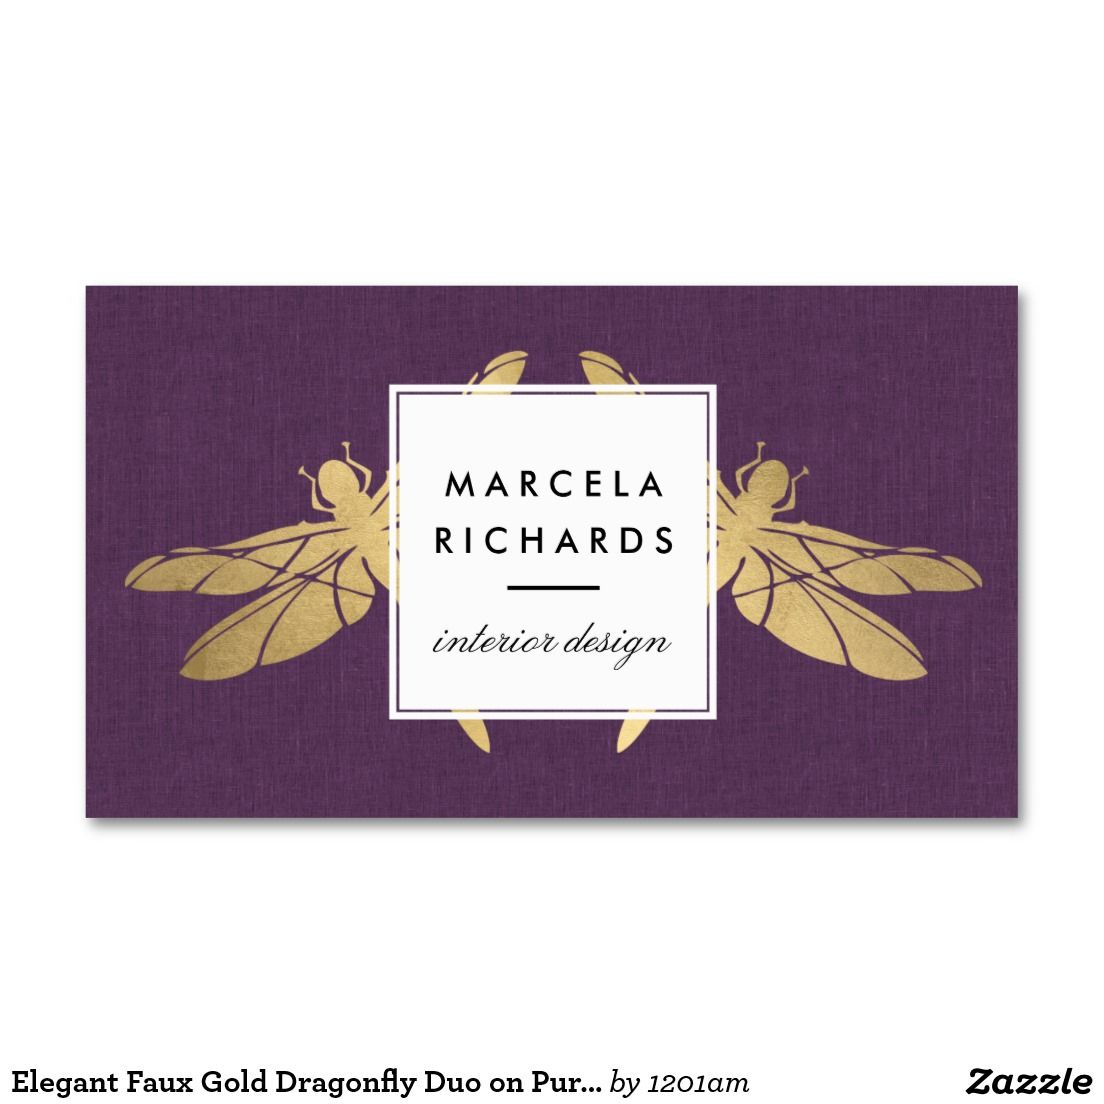 Elegant Faux Gold Dragonfly Duo on Purple Linen Double-Sided ...